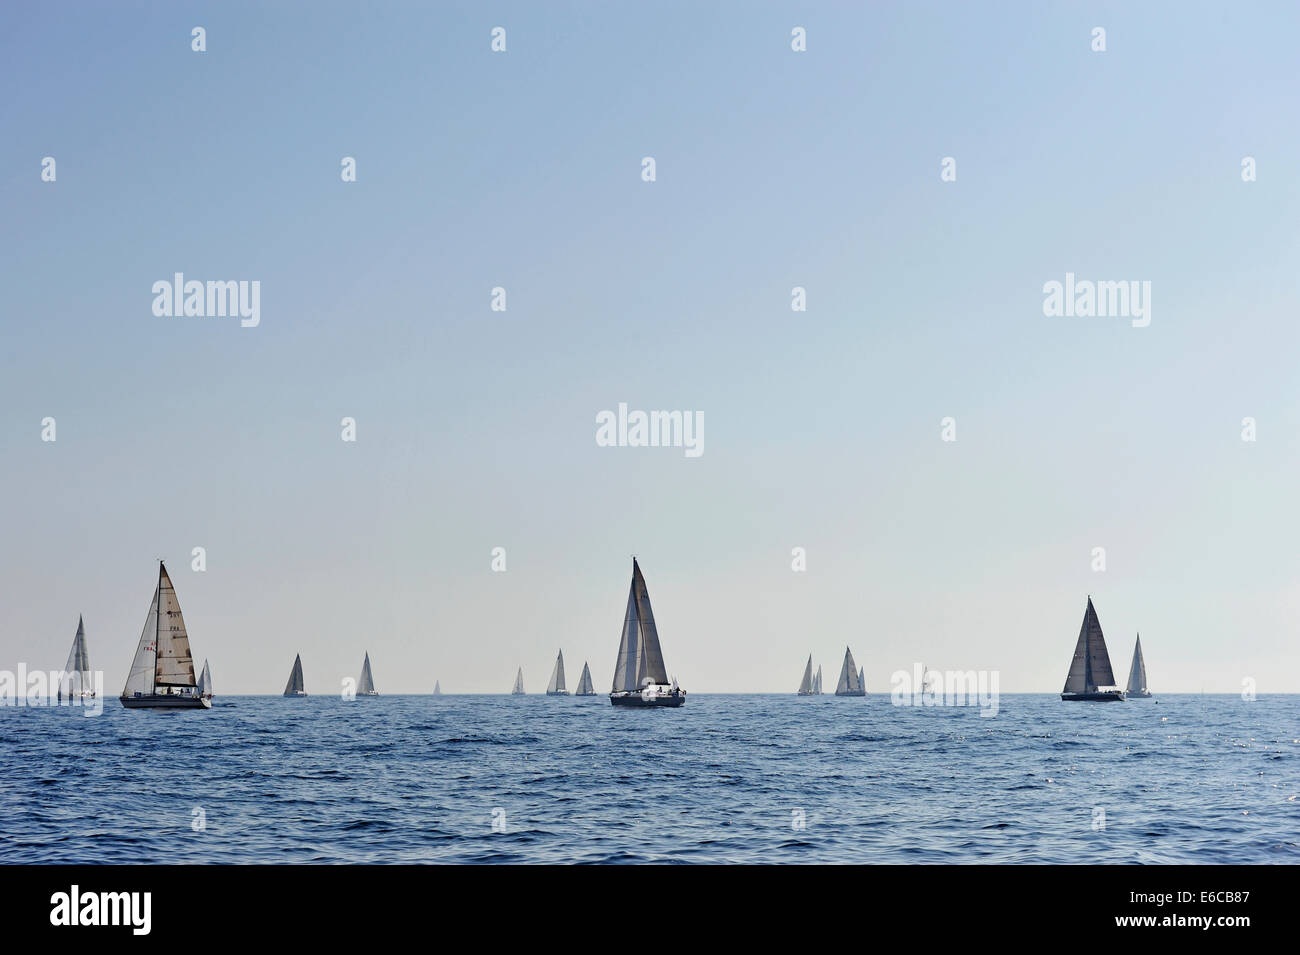 Sailboats during a regatta in the Mediterranean Sea off the coast of Marseille, South of France, Europe - Stock Image